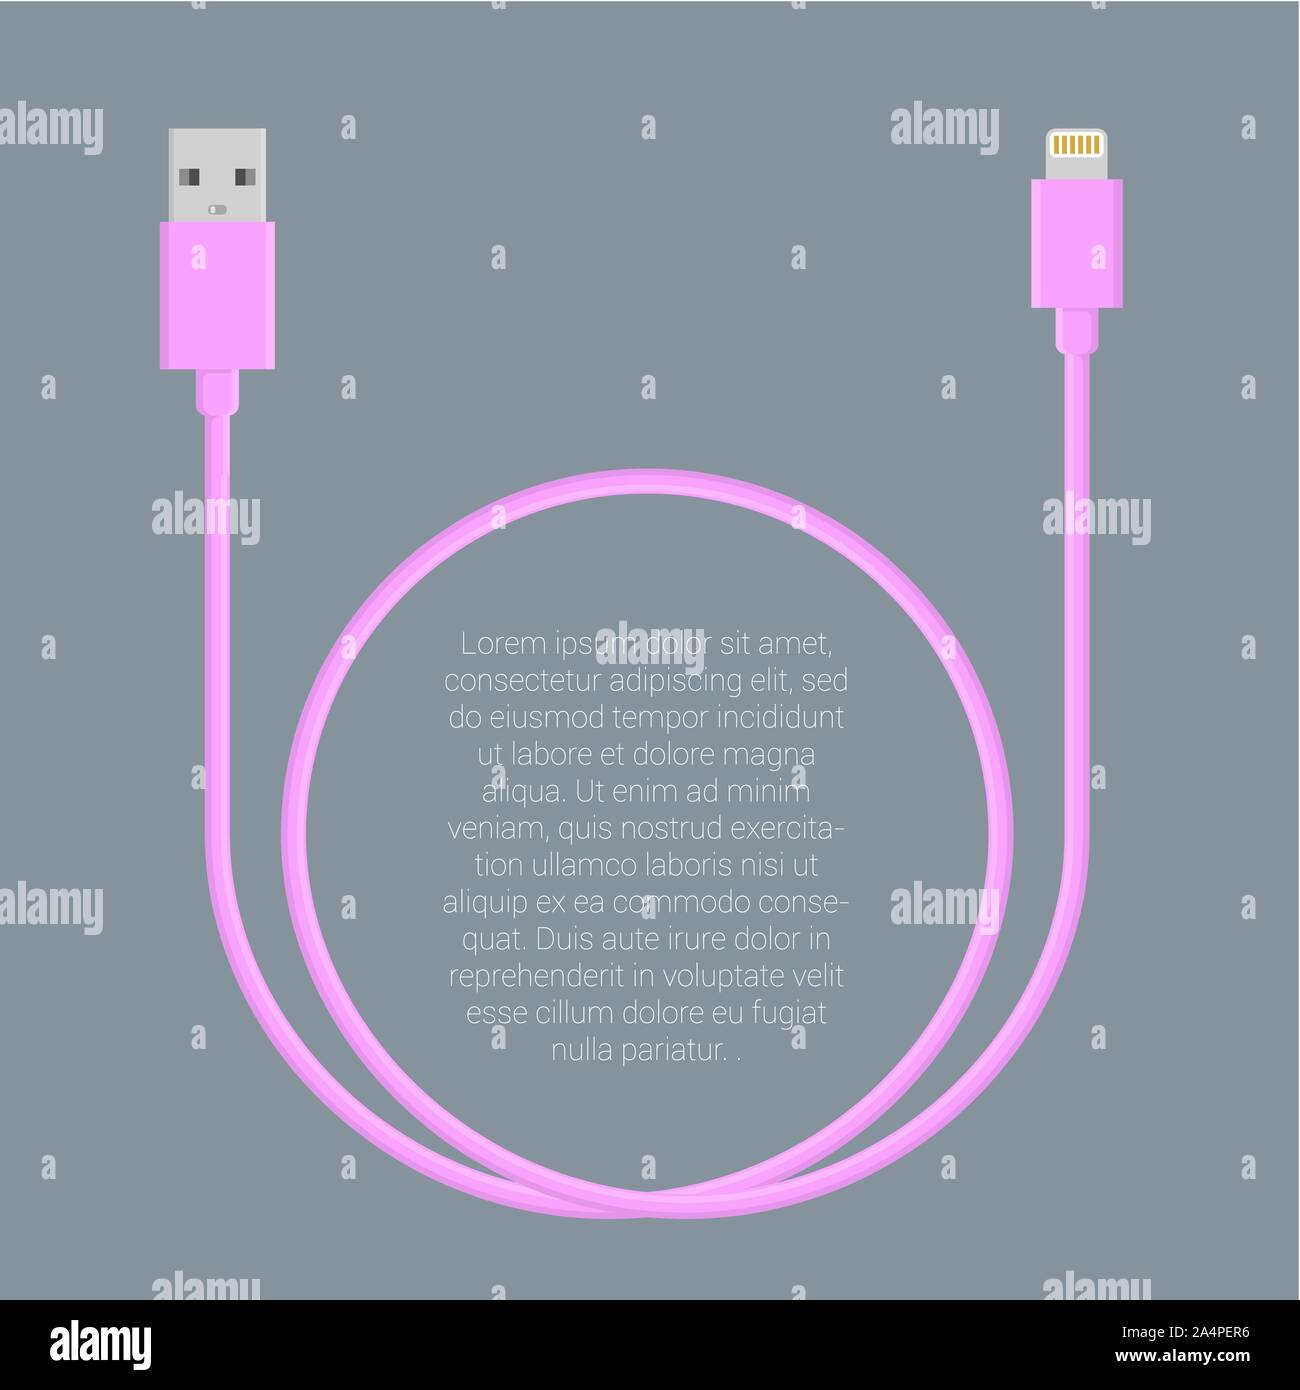 Usb data cable template Stock Vector